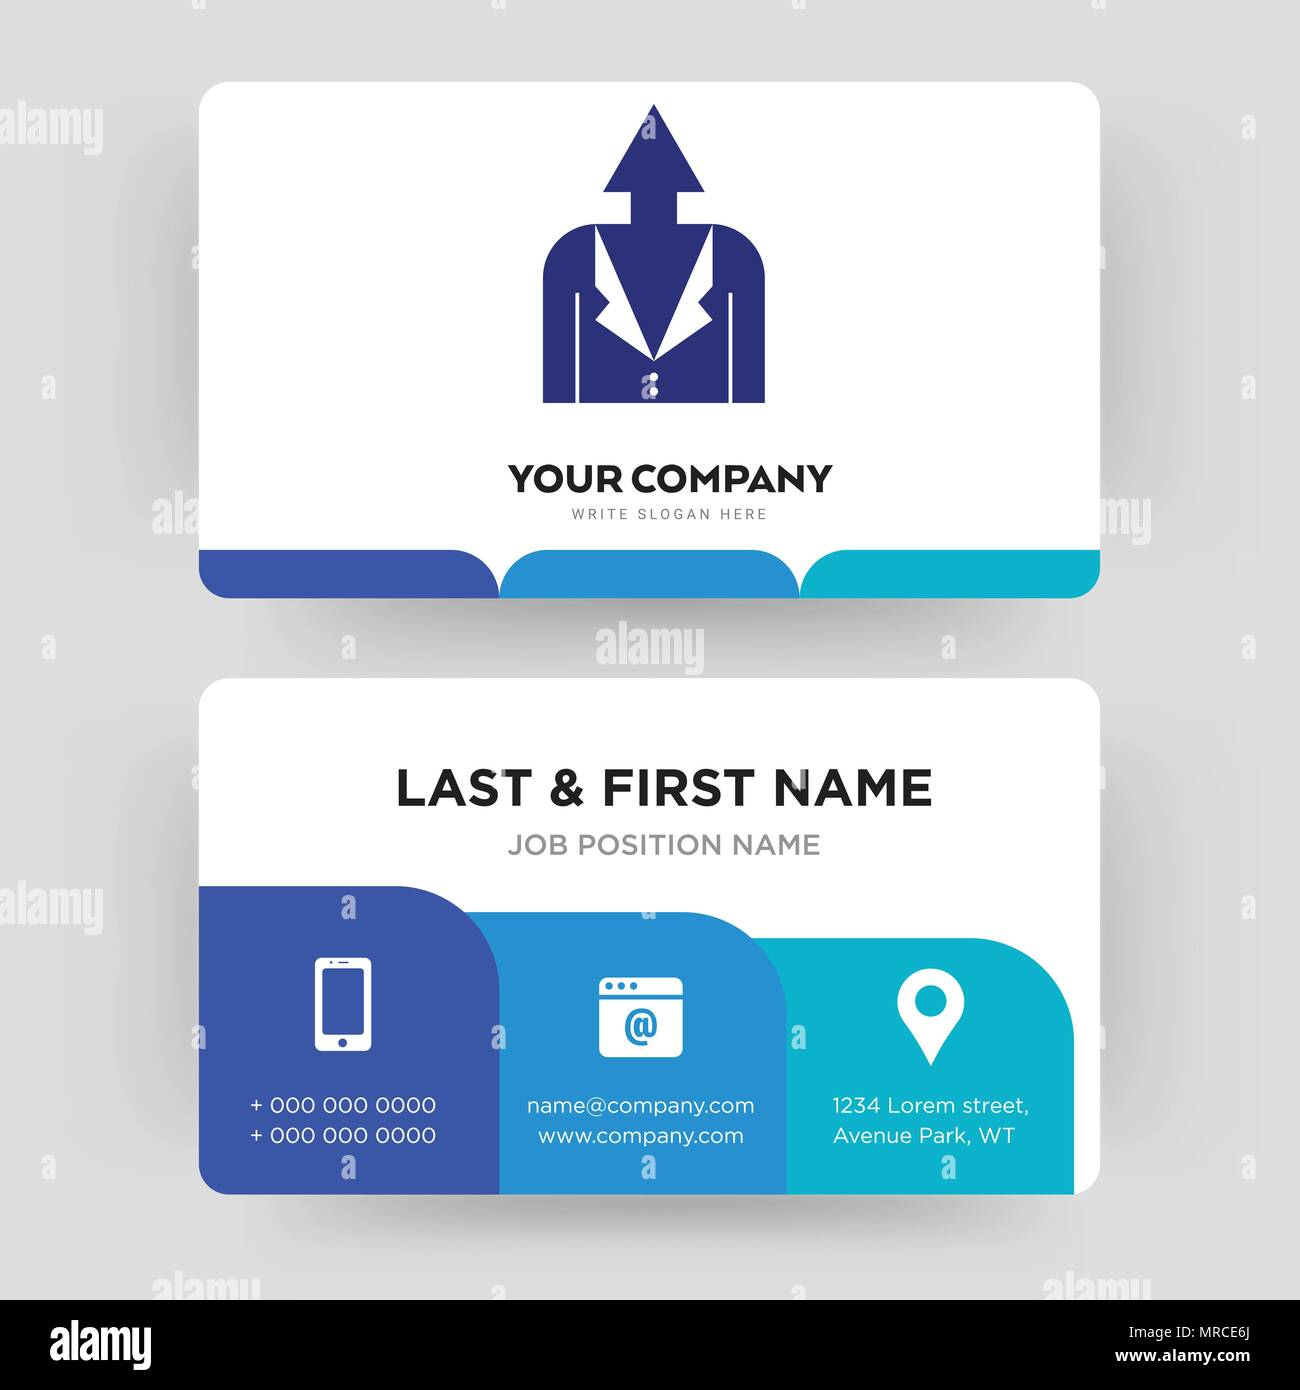 Personal Development Business Card Design Template Visiting For Your Company Modern Creative And Clean Identity Vector